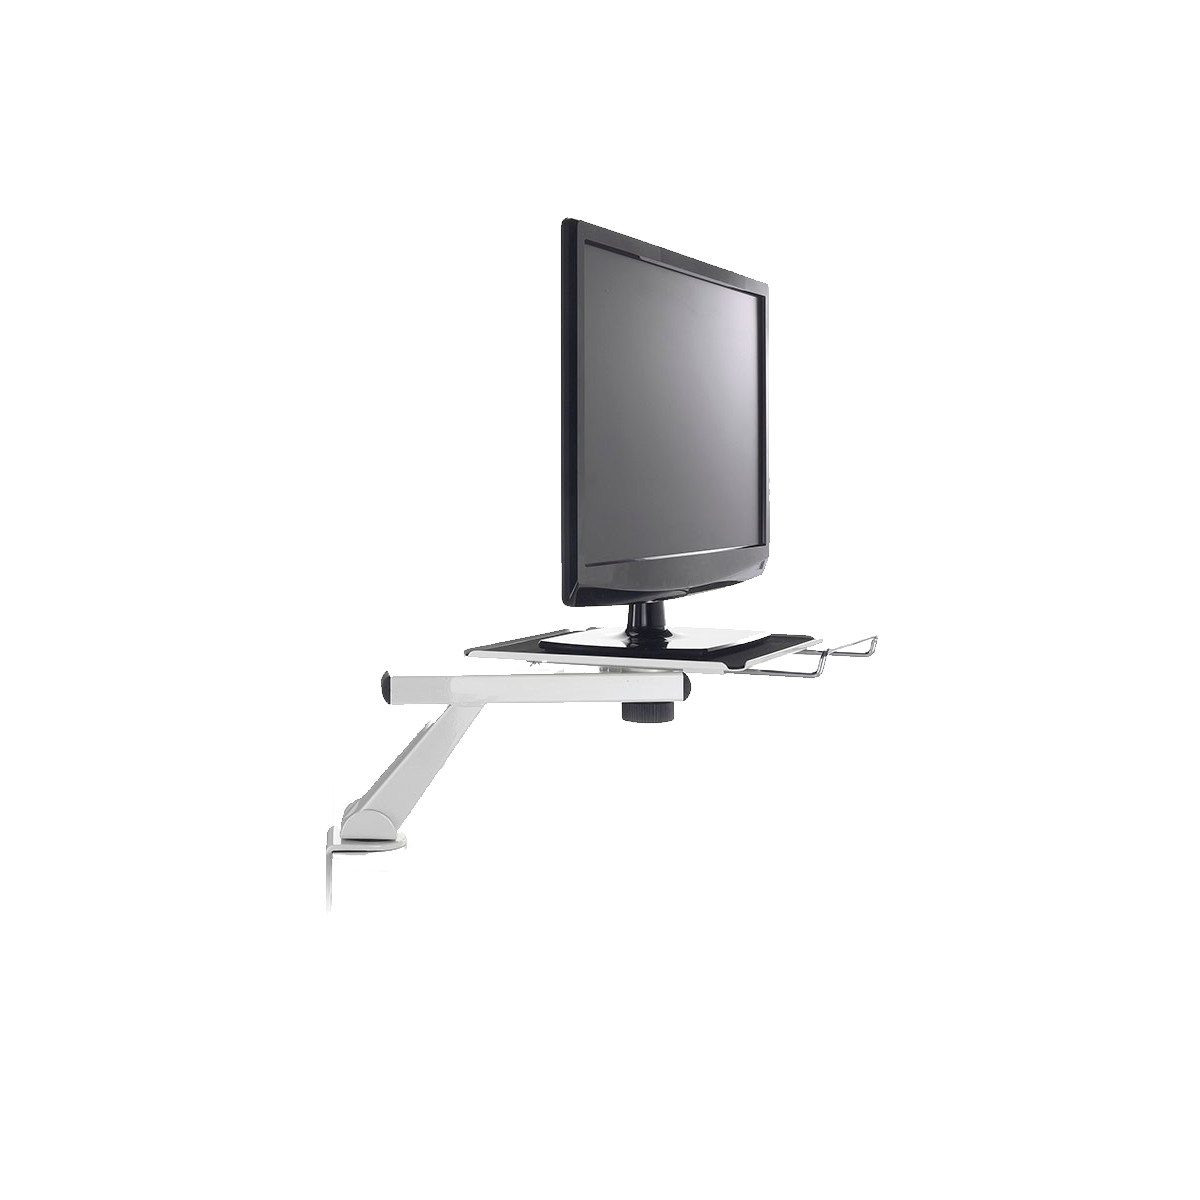 Monitor support arm